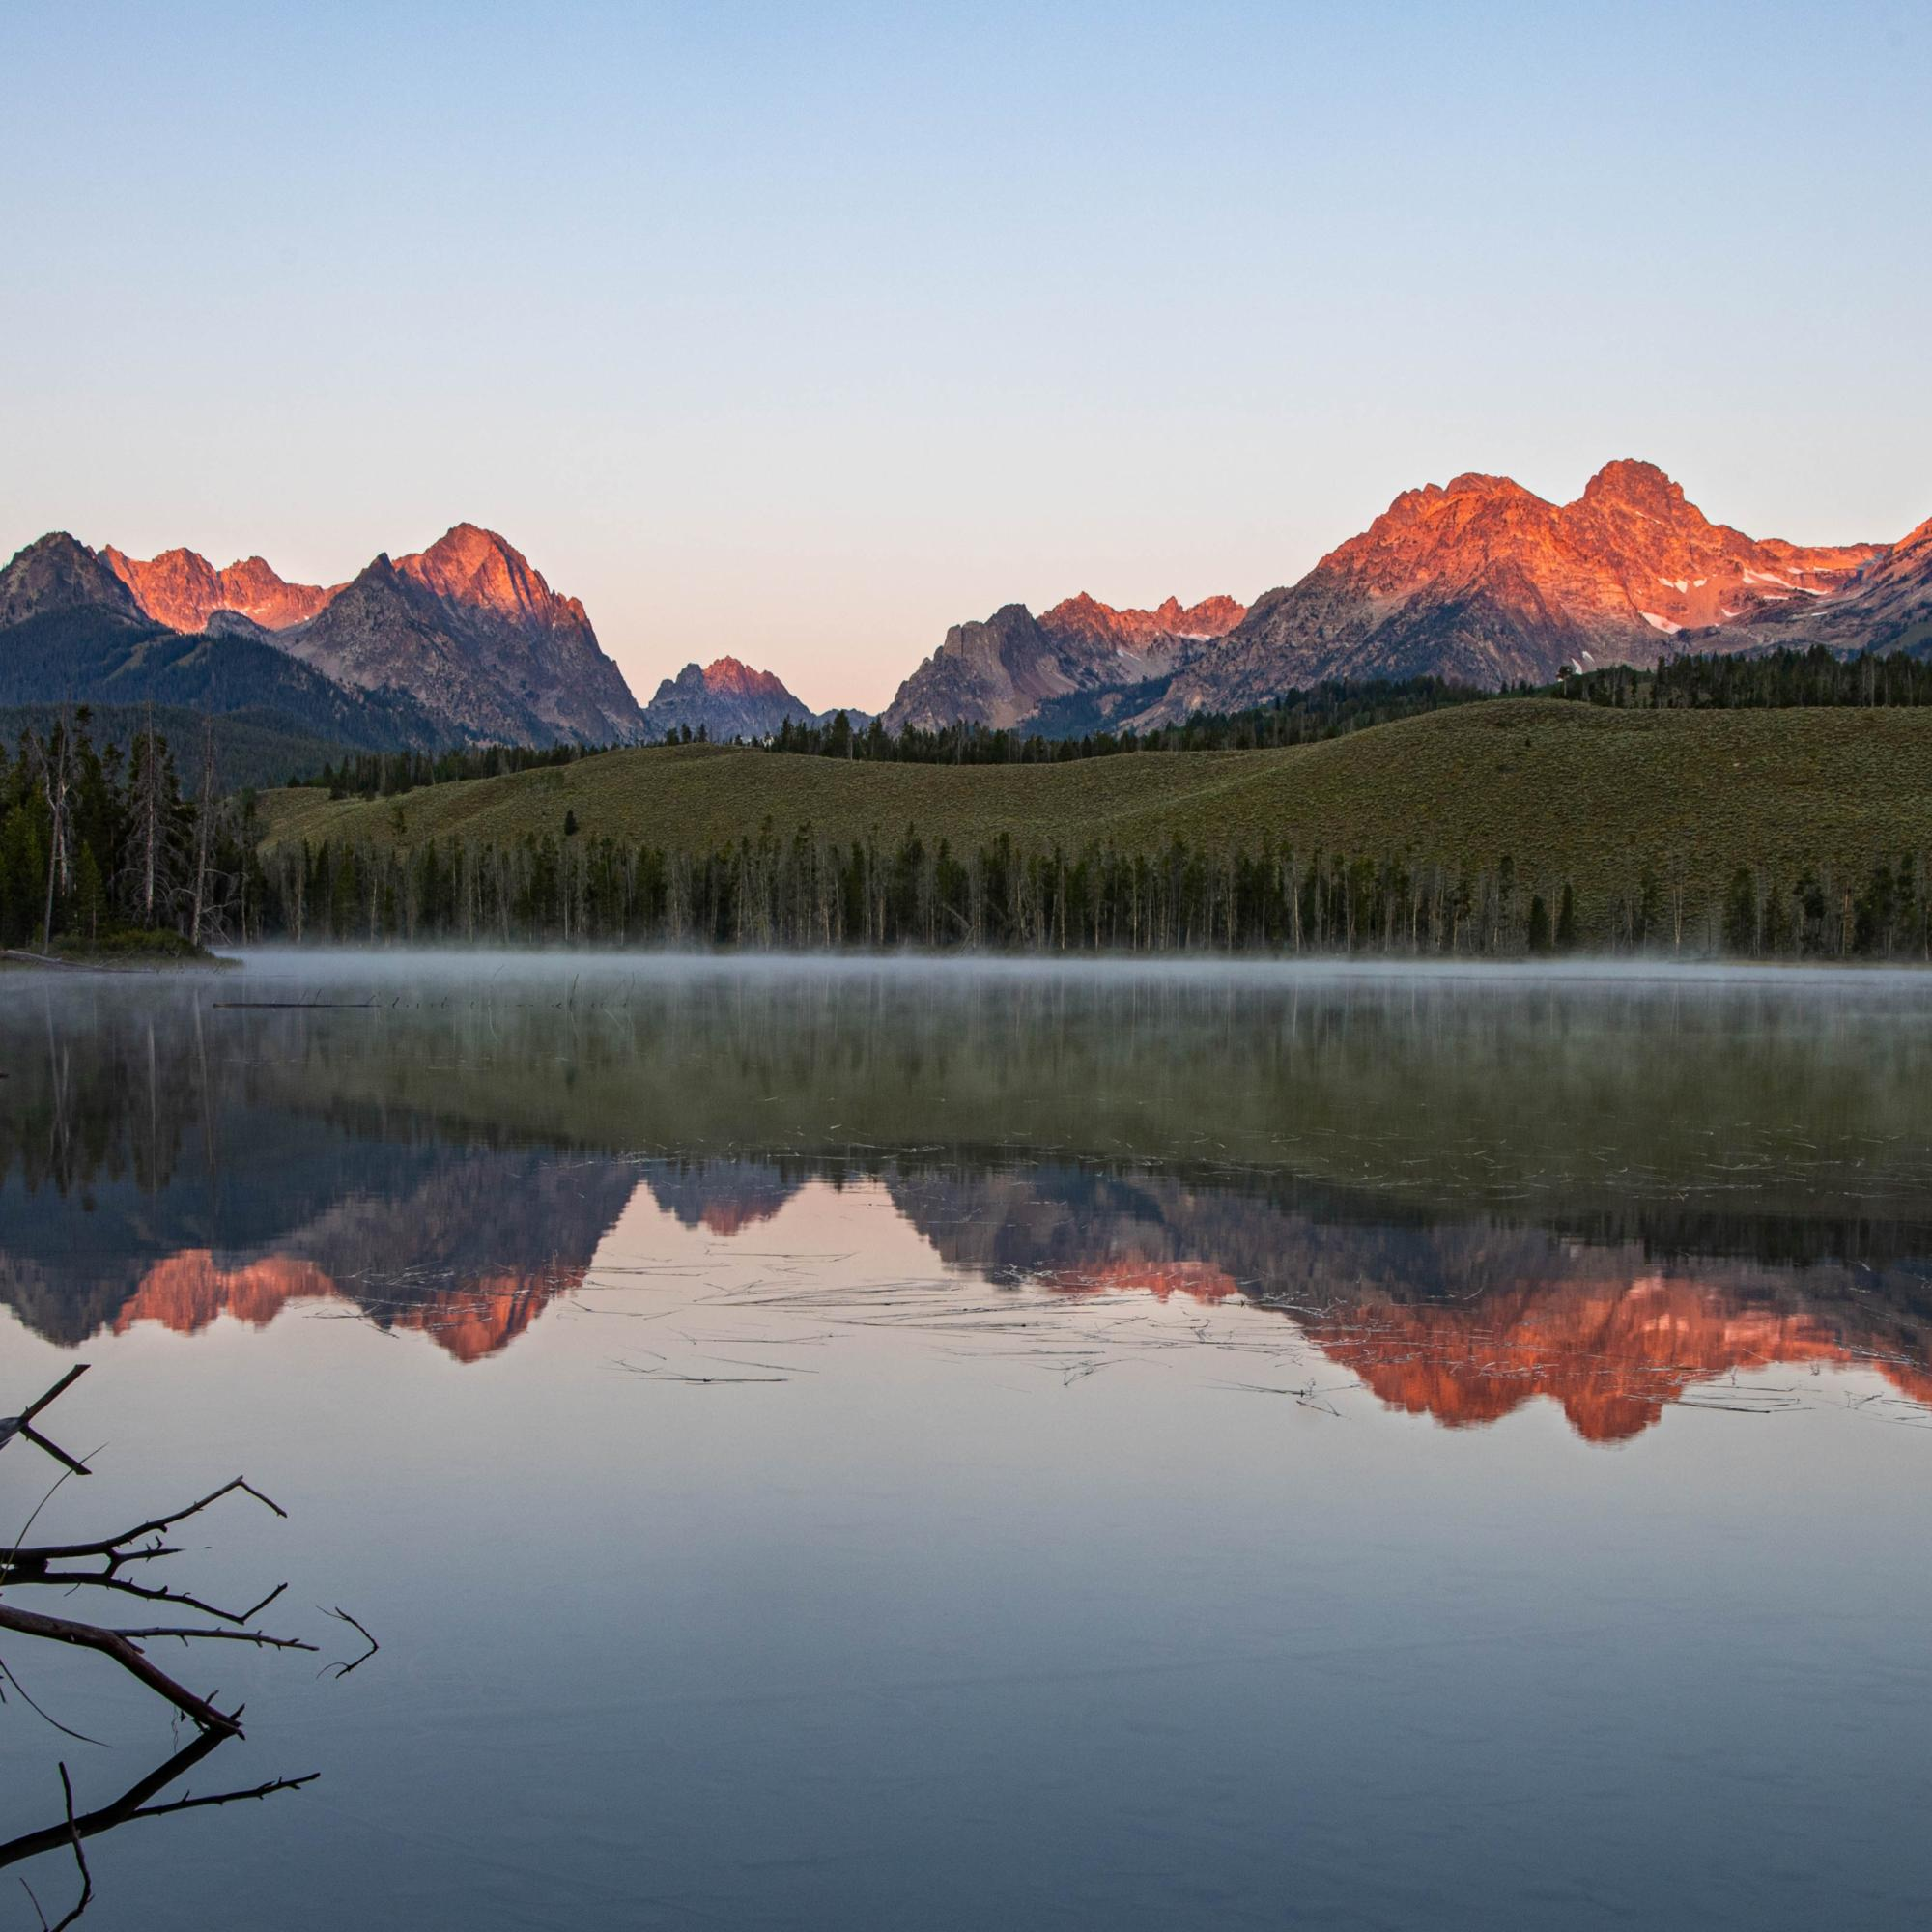 Sunrise at Little Redfish Lake